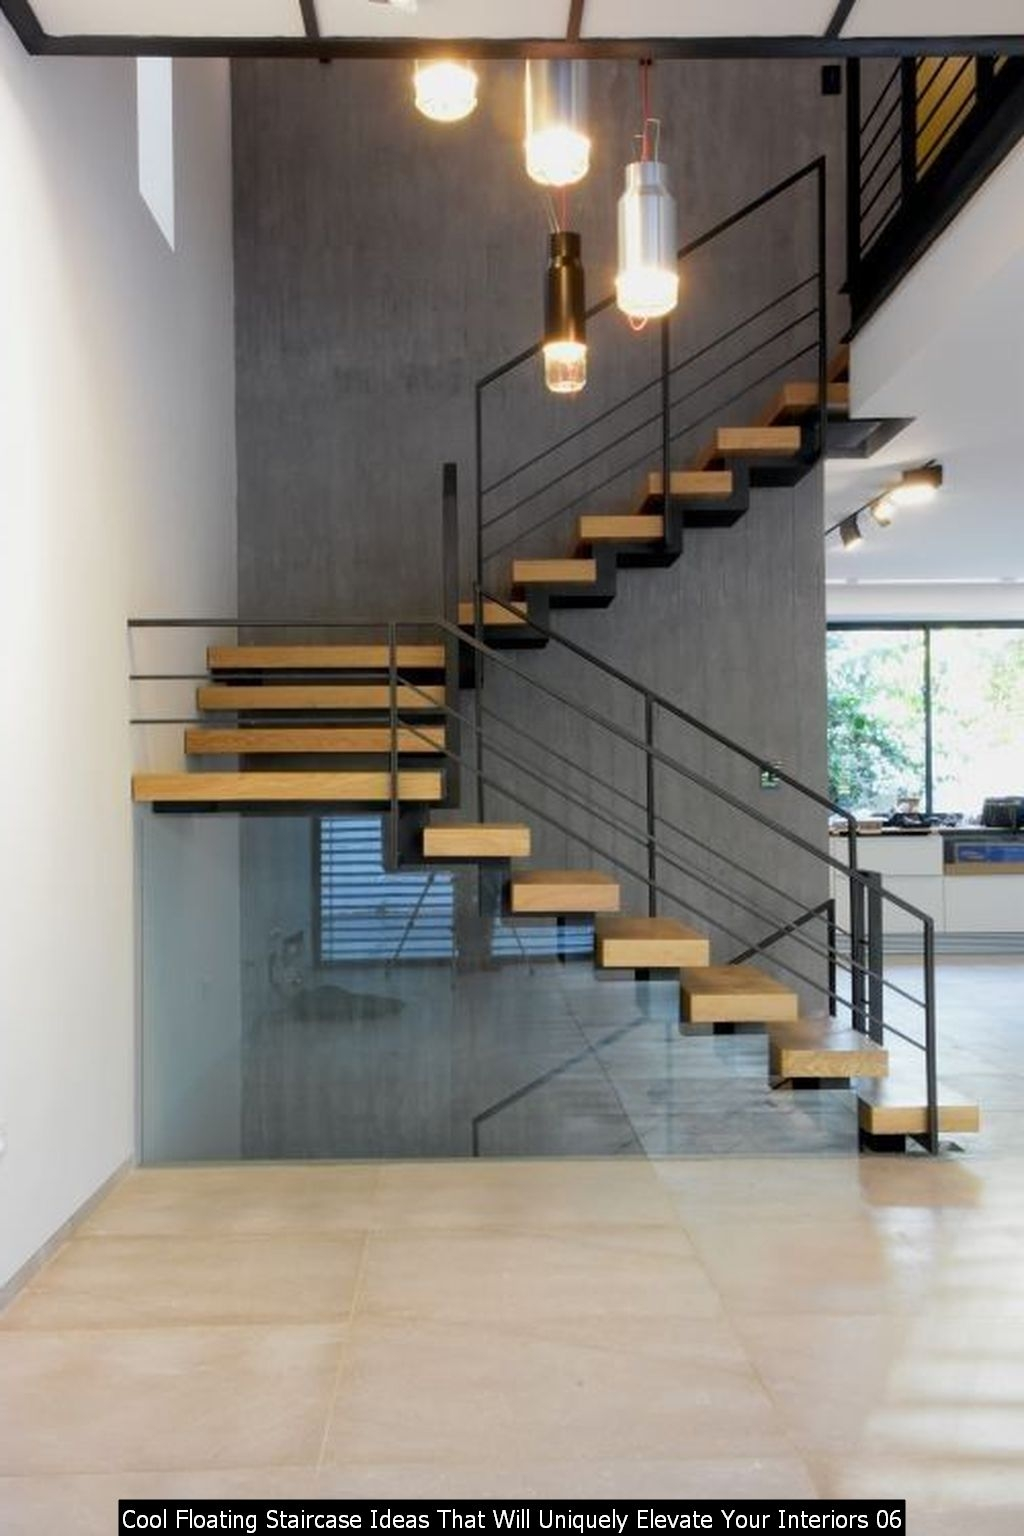 Cool Floating Staircase Ideas That Will Uniquely Elevate Your Interiors 06